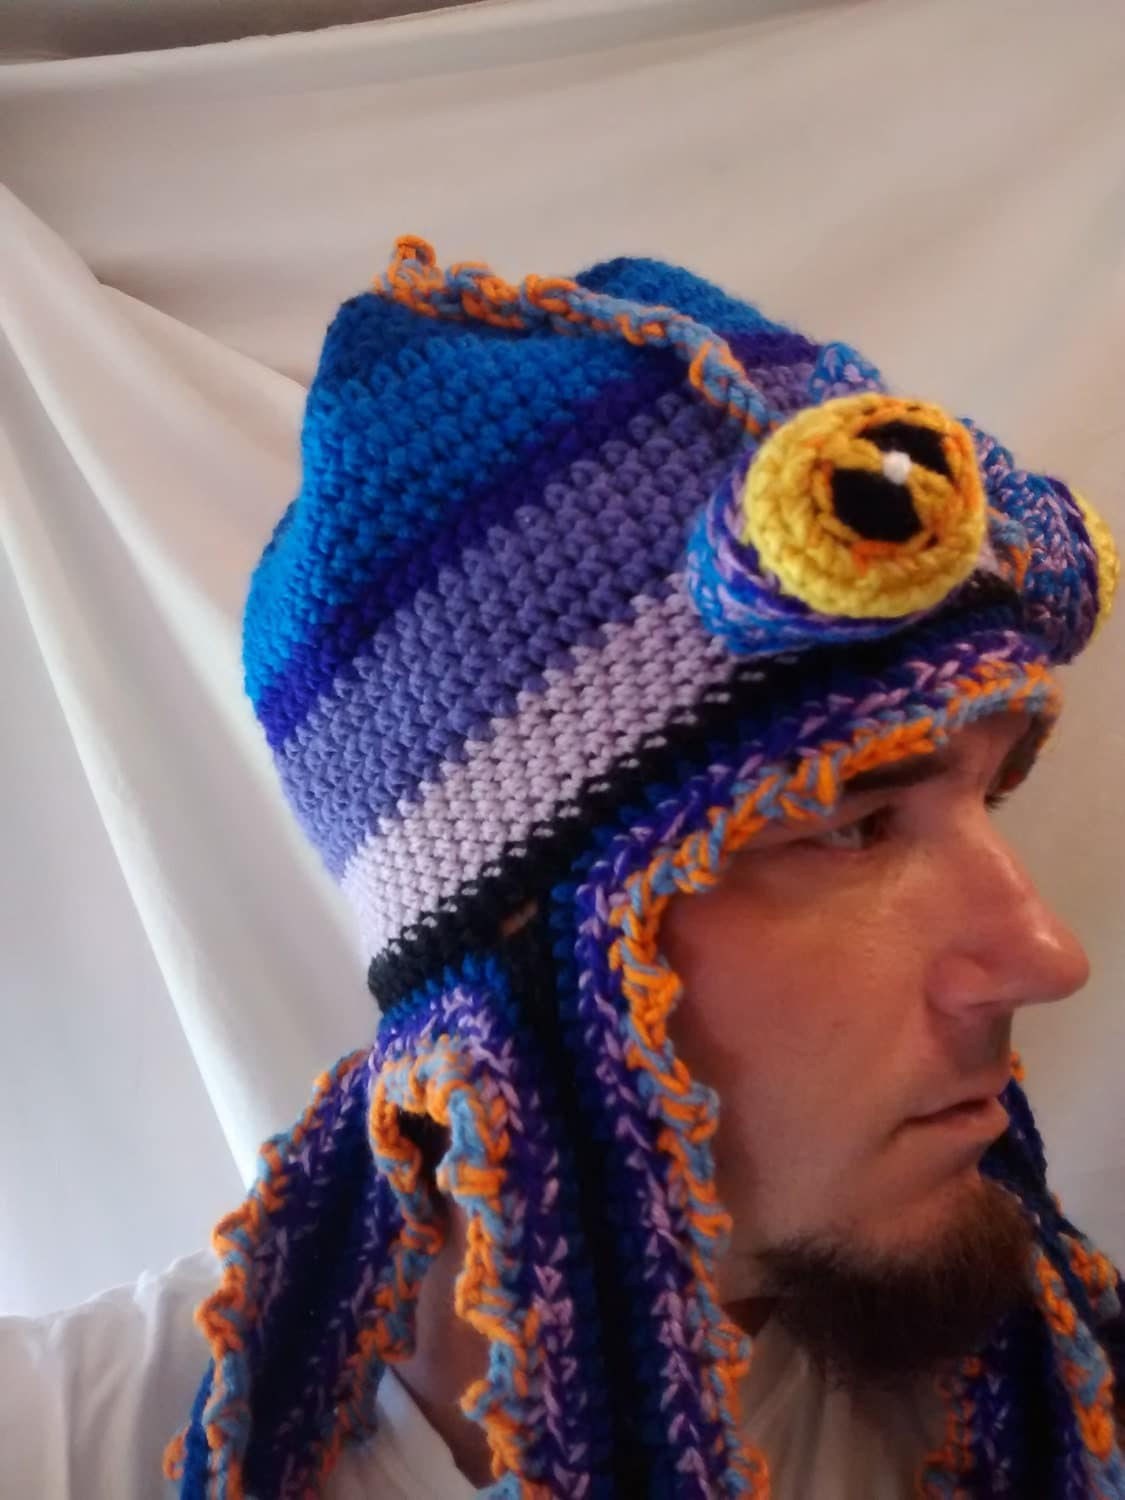 Crochet Octopus Hat : Octopus Unique Crochet Hat by AldenBreauxStudios on Etsy